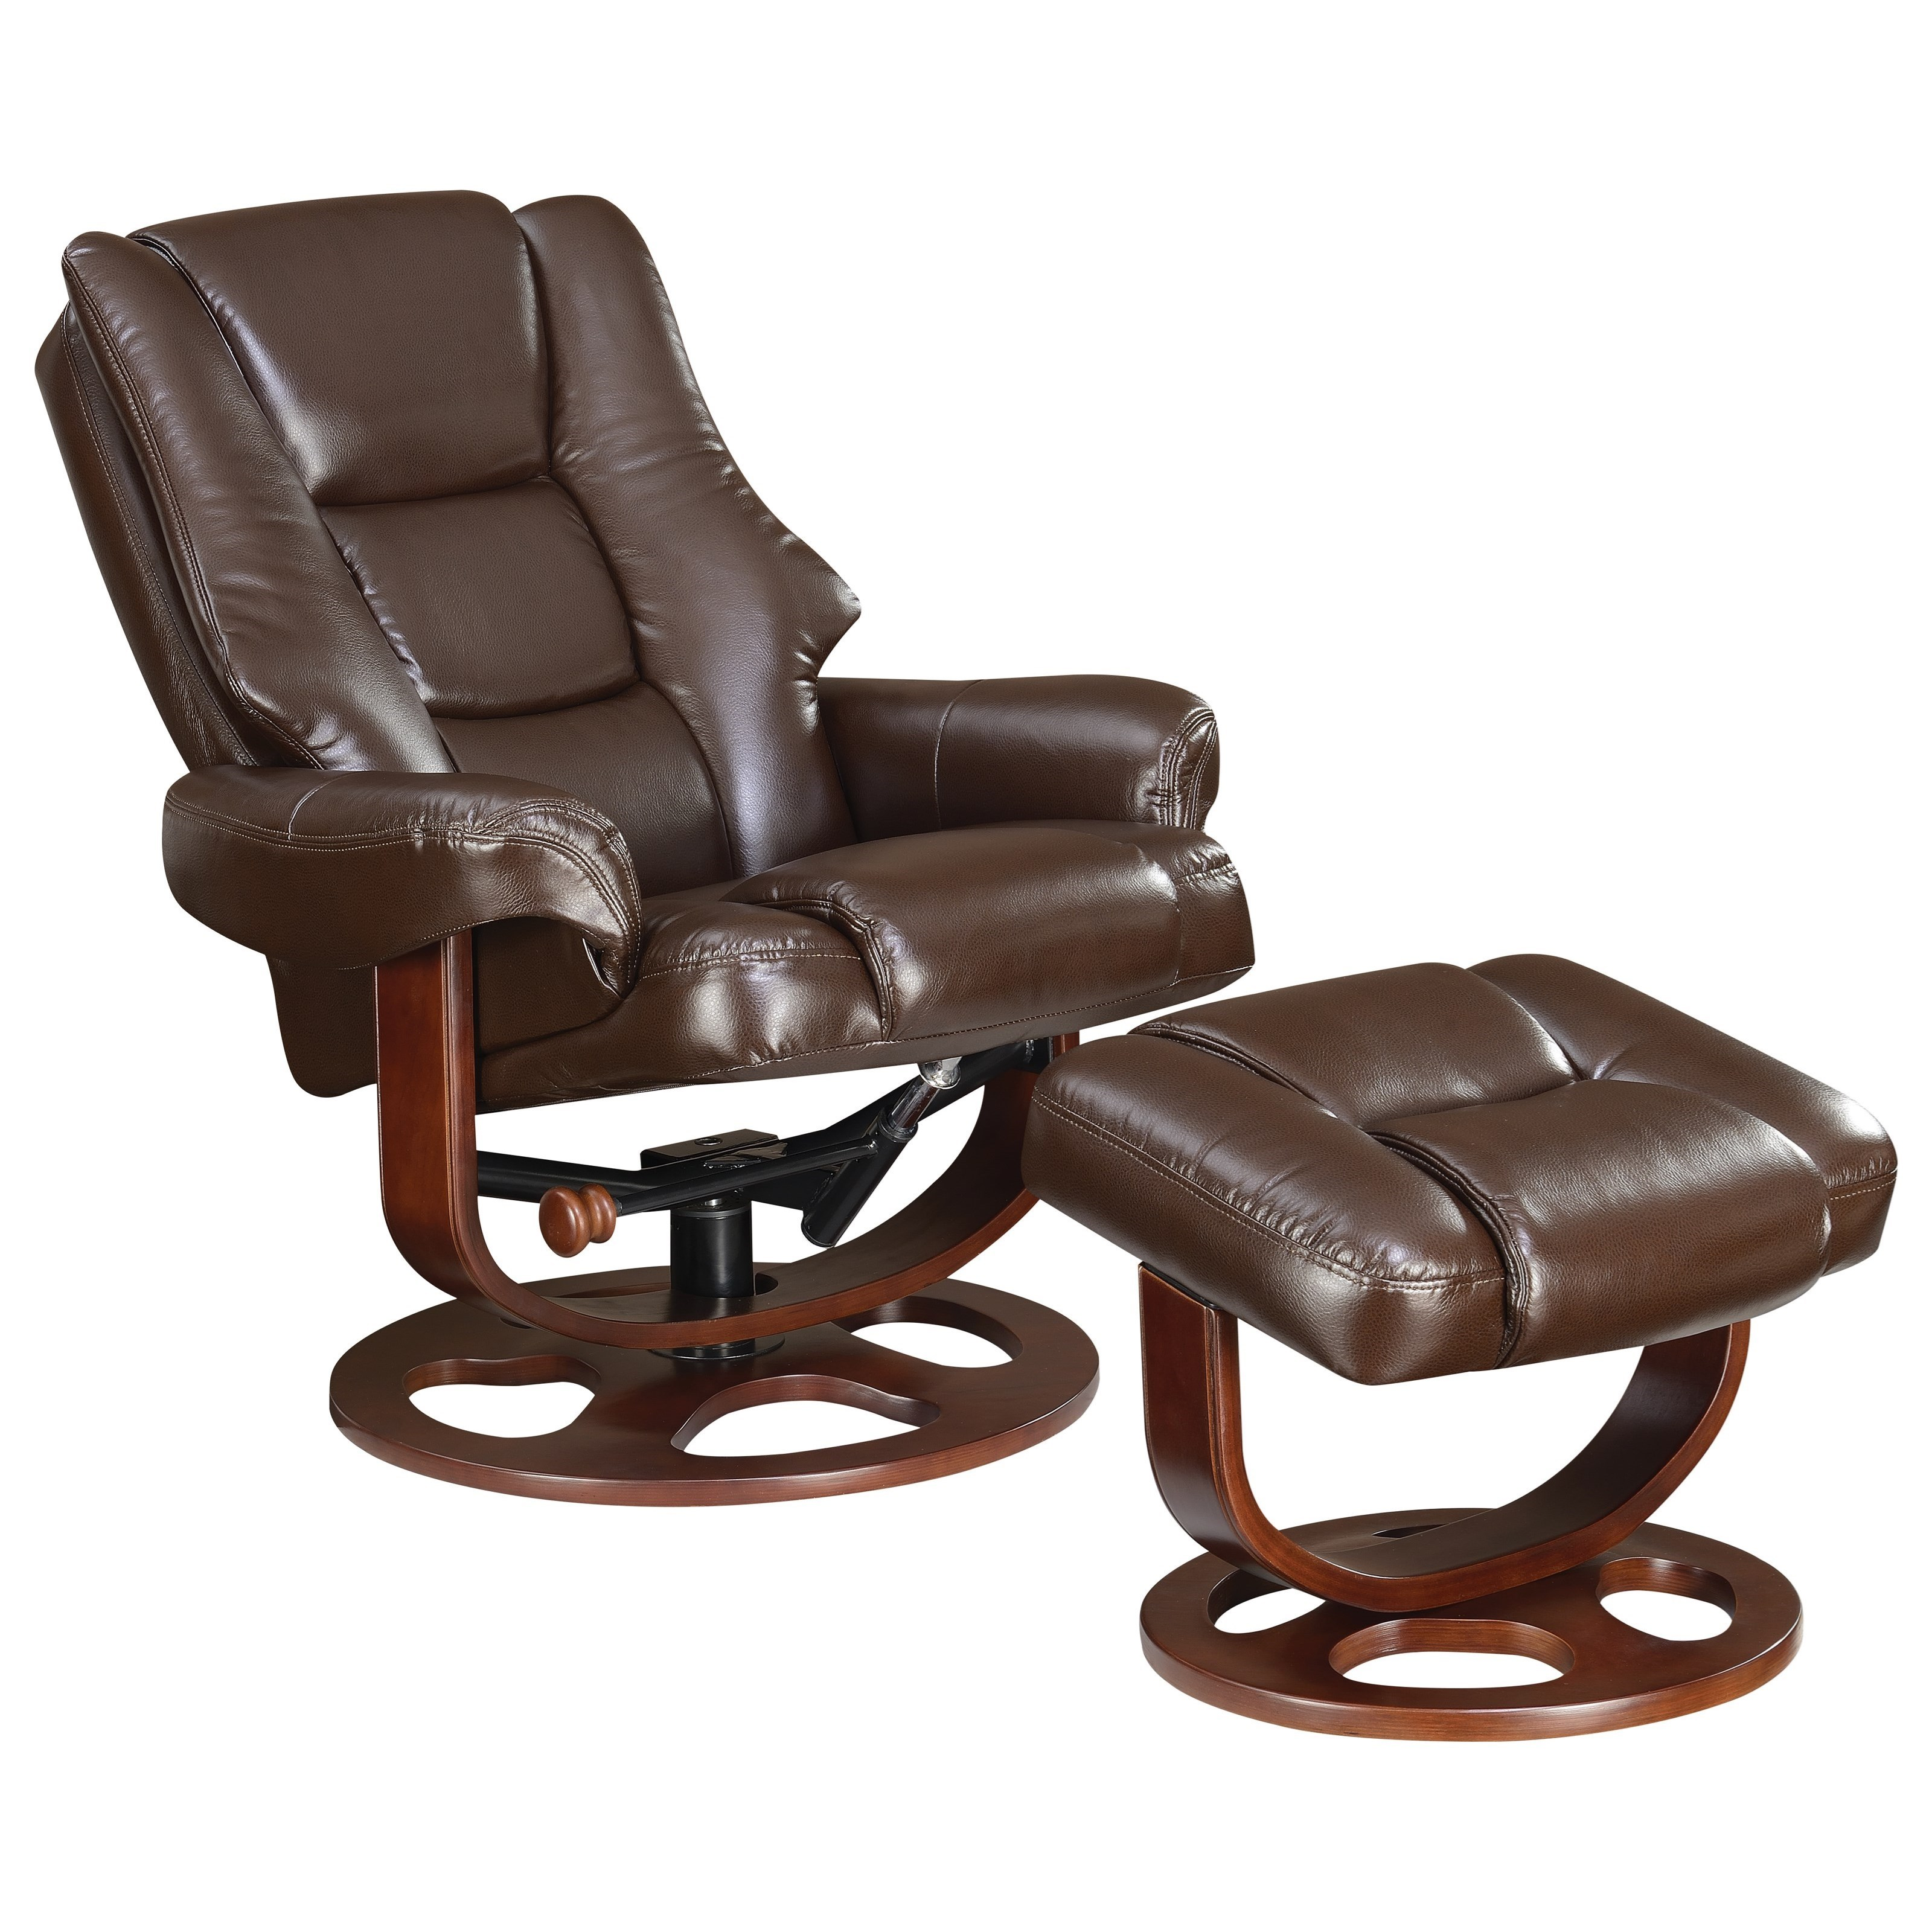 Stressless Recliners With Ottoman Coaster Recliners With Ottomans 600086 Plush Recliner And